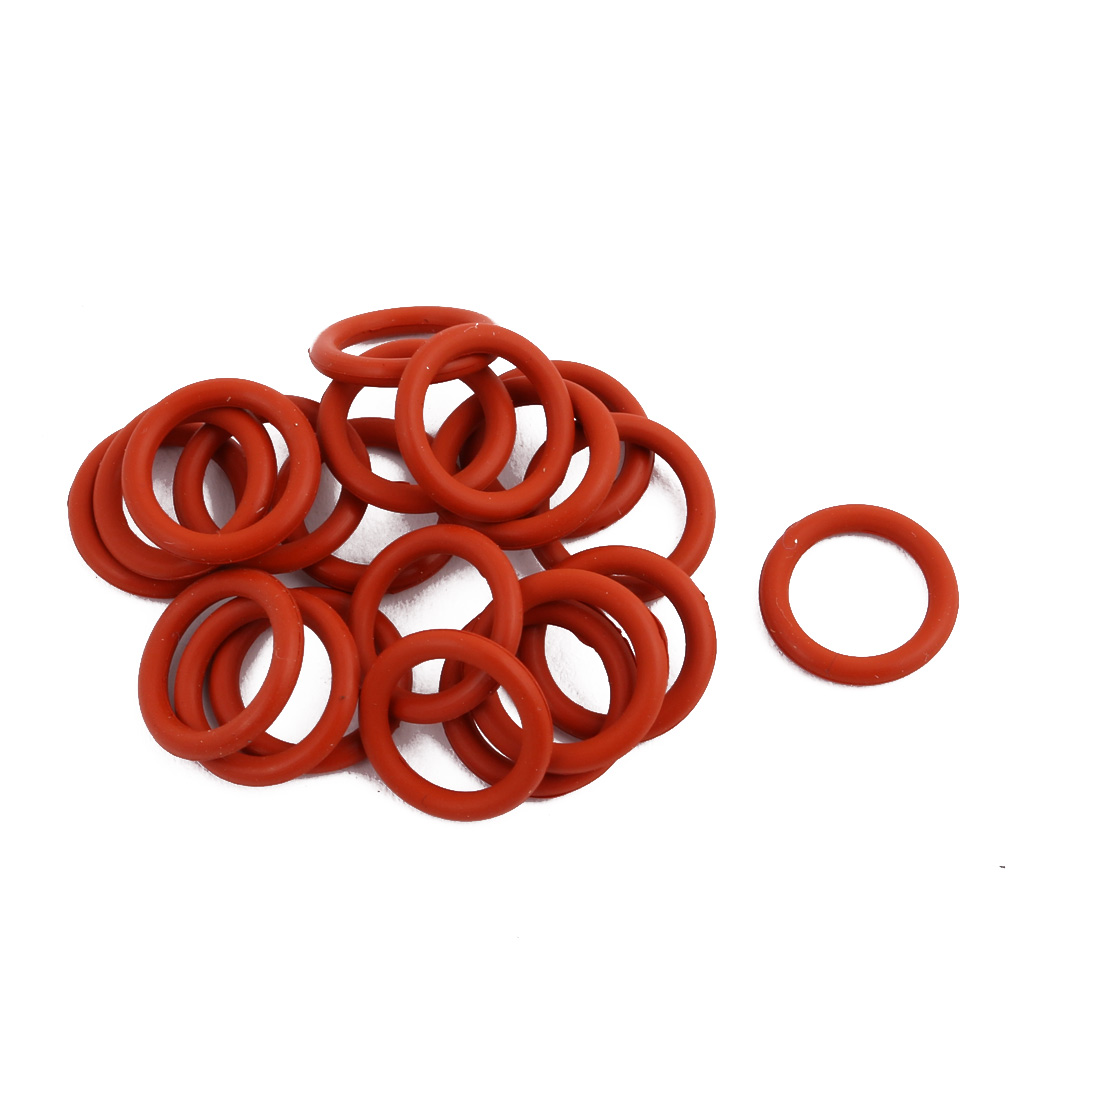 20Pcs Red Round Nitrile Butadiene Rubber NBR O-Ring 13mm OD 1.9mm Width